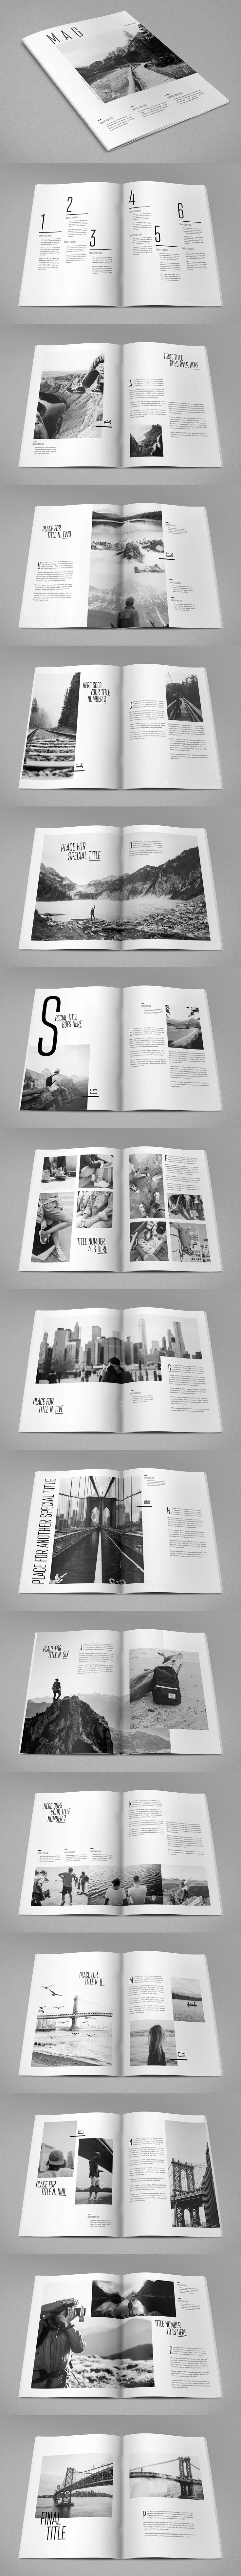 Cool Minimal Photography Magazine Template InDesign INDD A4 and US Letter Size